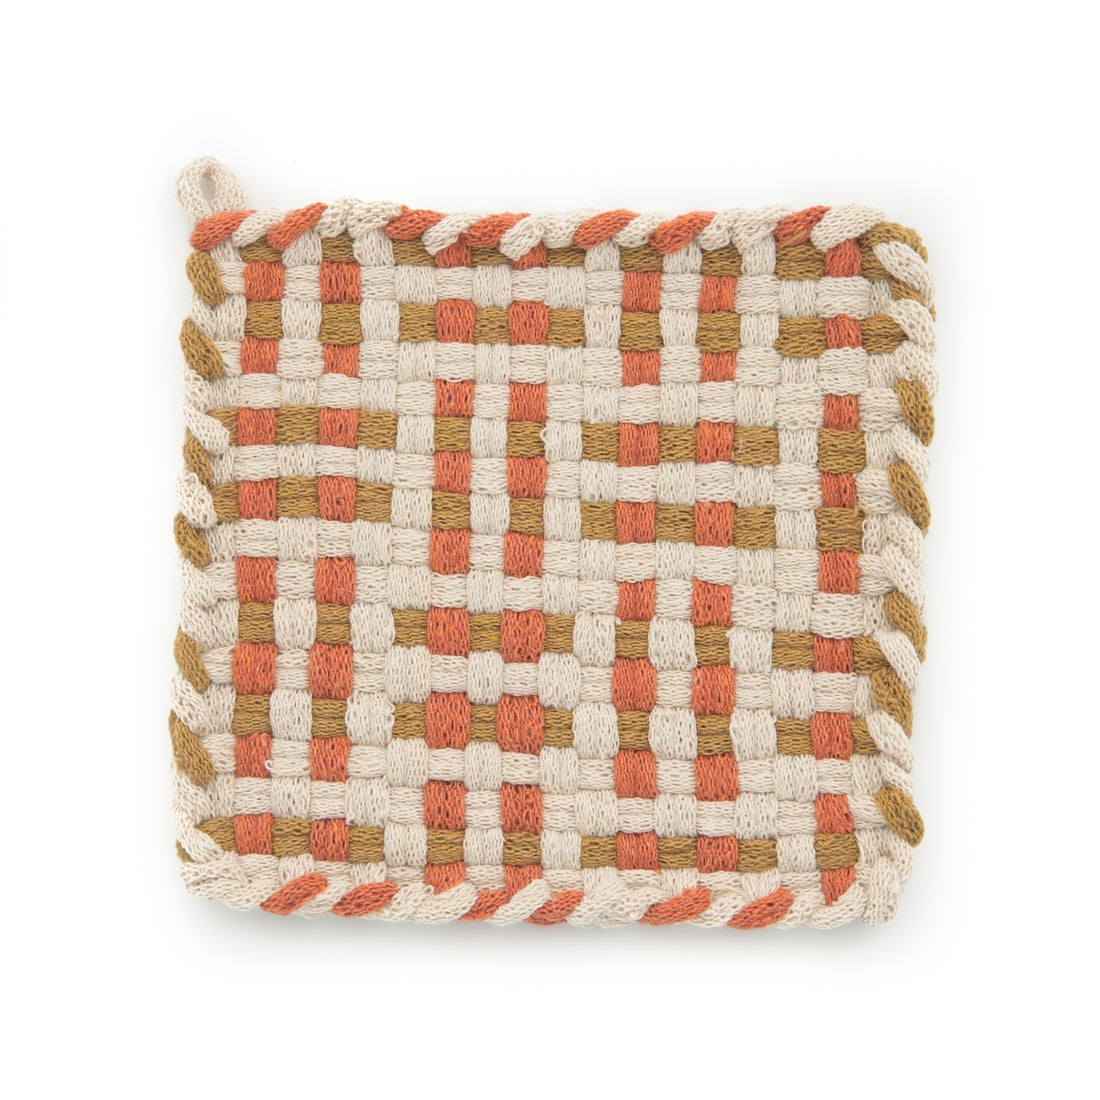 Kate Kilmurray: Handwoven Potholders in Deep Forest Collection Flax, Spice & Ochre